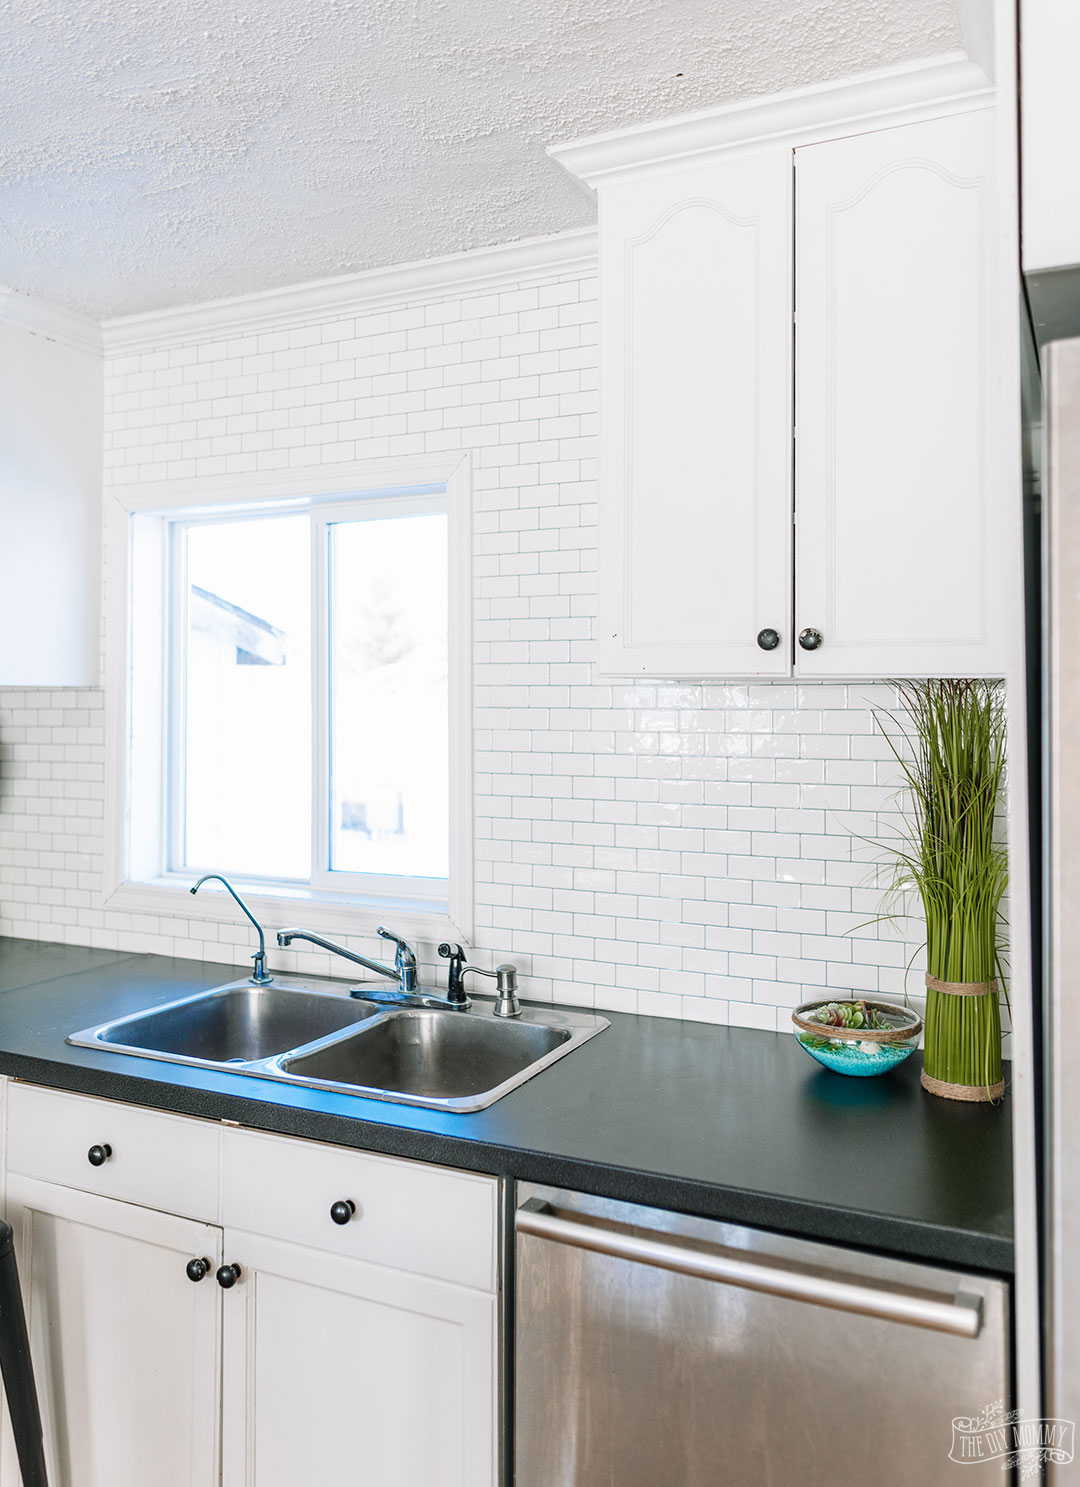 Step by step video tutorial on how to install peel and stick tile backsplash for an easy and budget friendly kitchen update